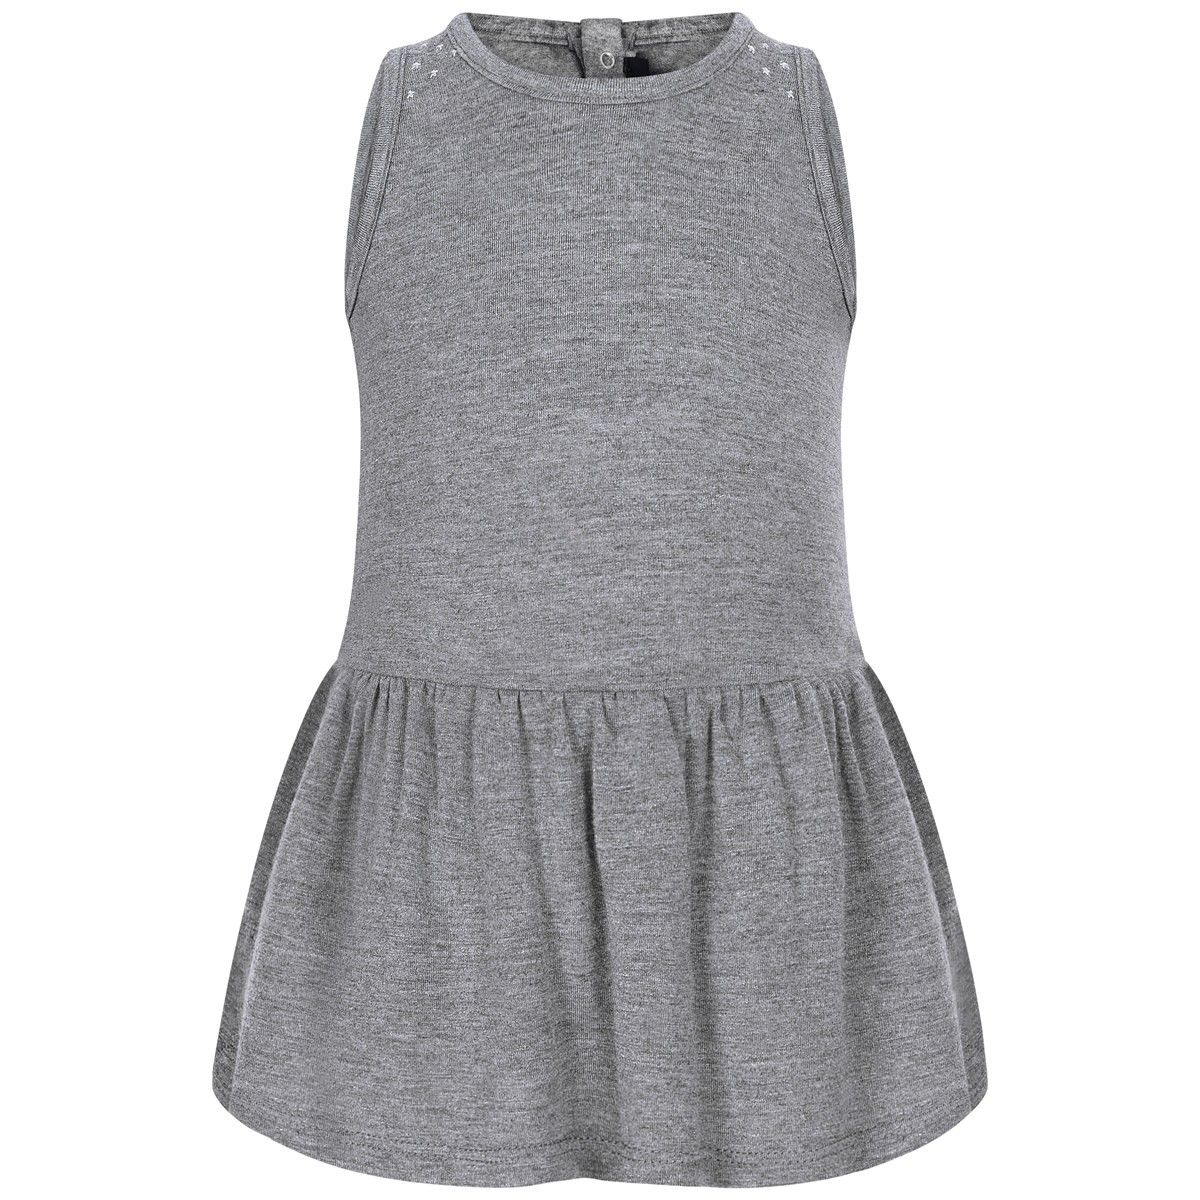 dkny baby girls grey sleeveless jersey u0026 tulle dress laste